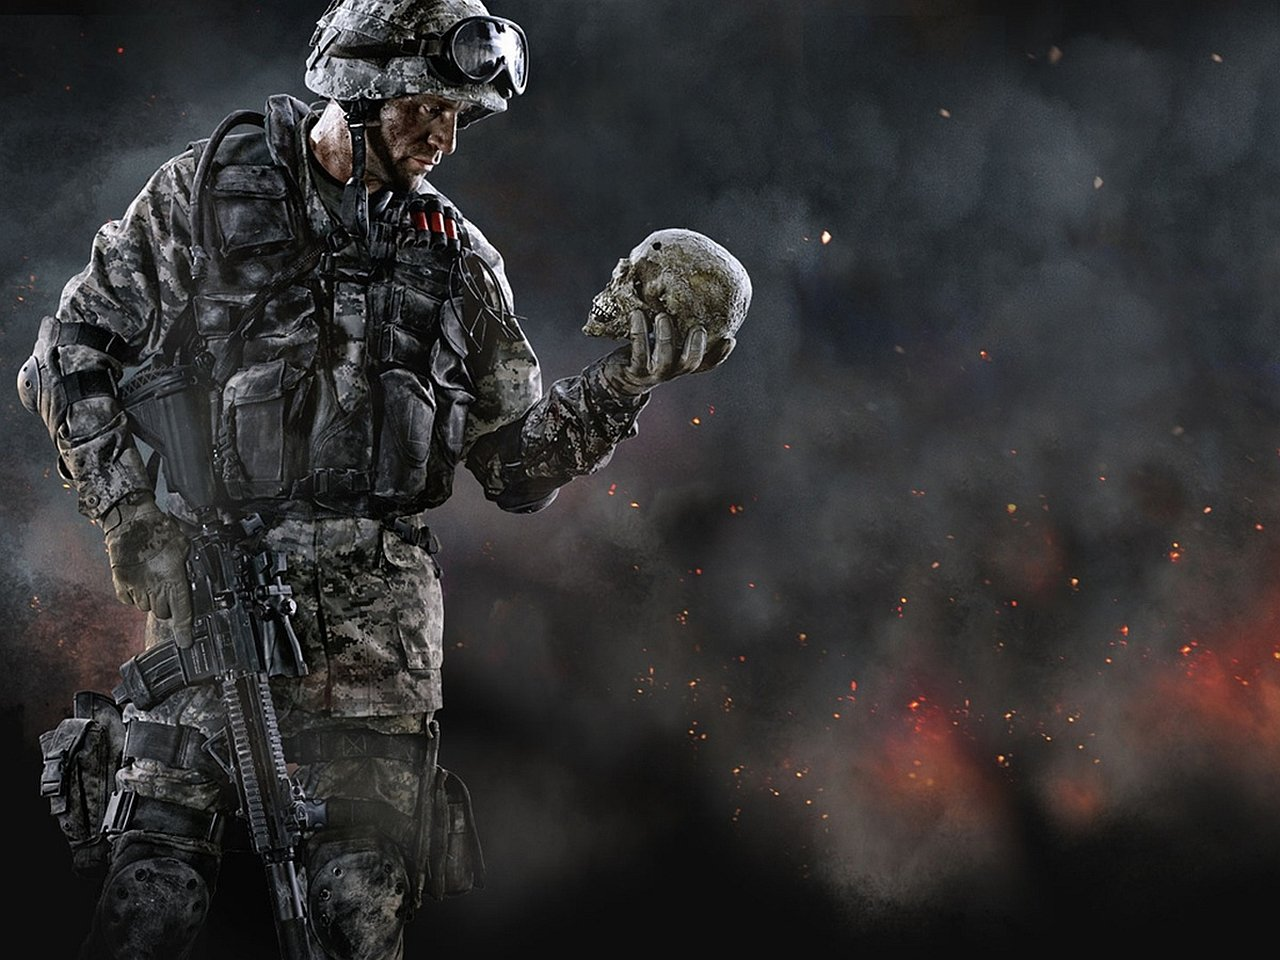 Awesome Military Backgrounds Hd Military   artistic wallpaper 1280x960